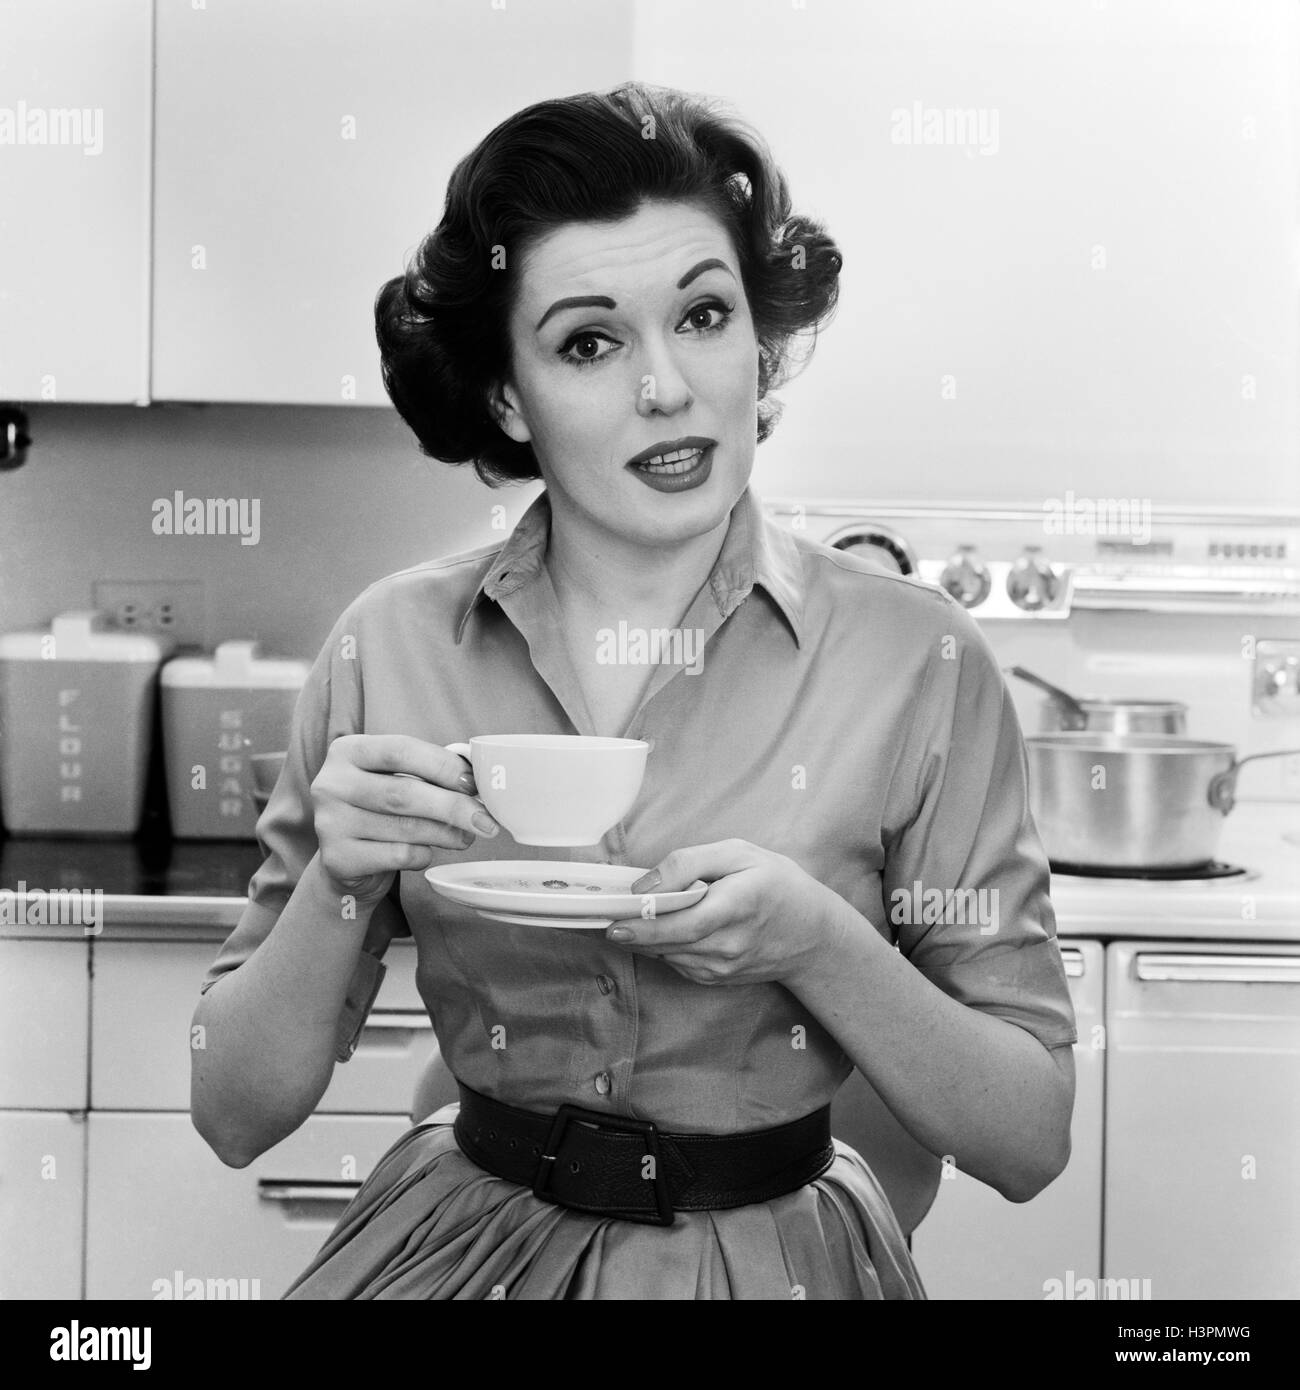 1950s 1960s PORTRAIT WOMAN HOUSEWIFE IN KITCHEN DRINKING CUP OF COFFEE SPEAKING LOOKING AT CAMERA - Stock Image